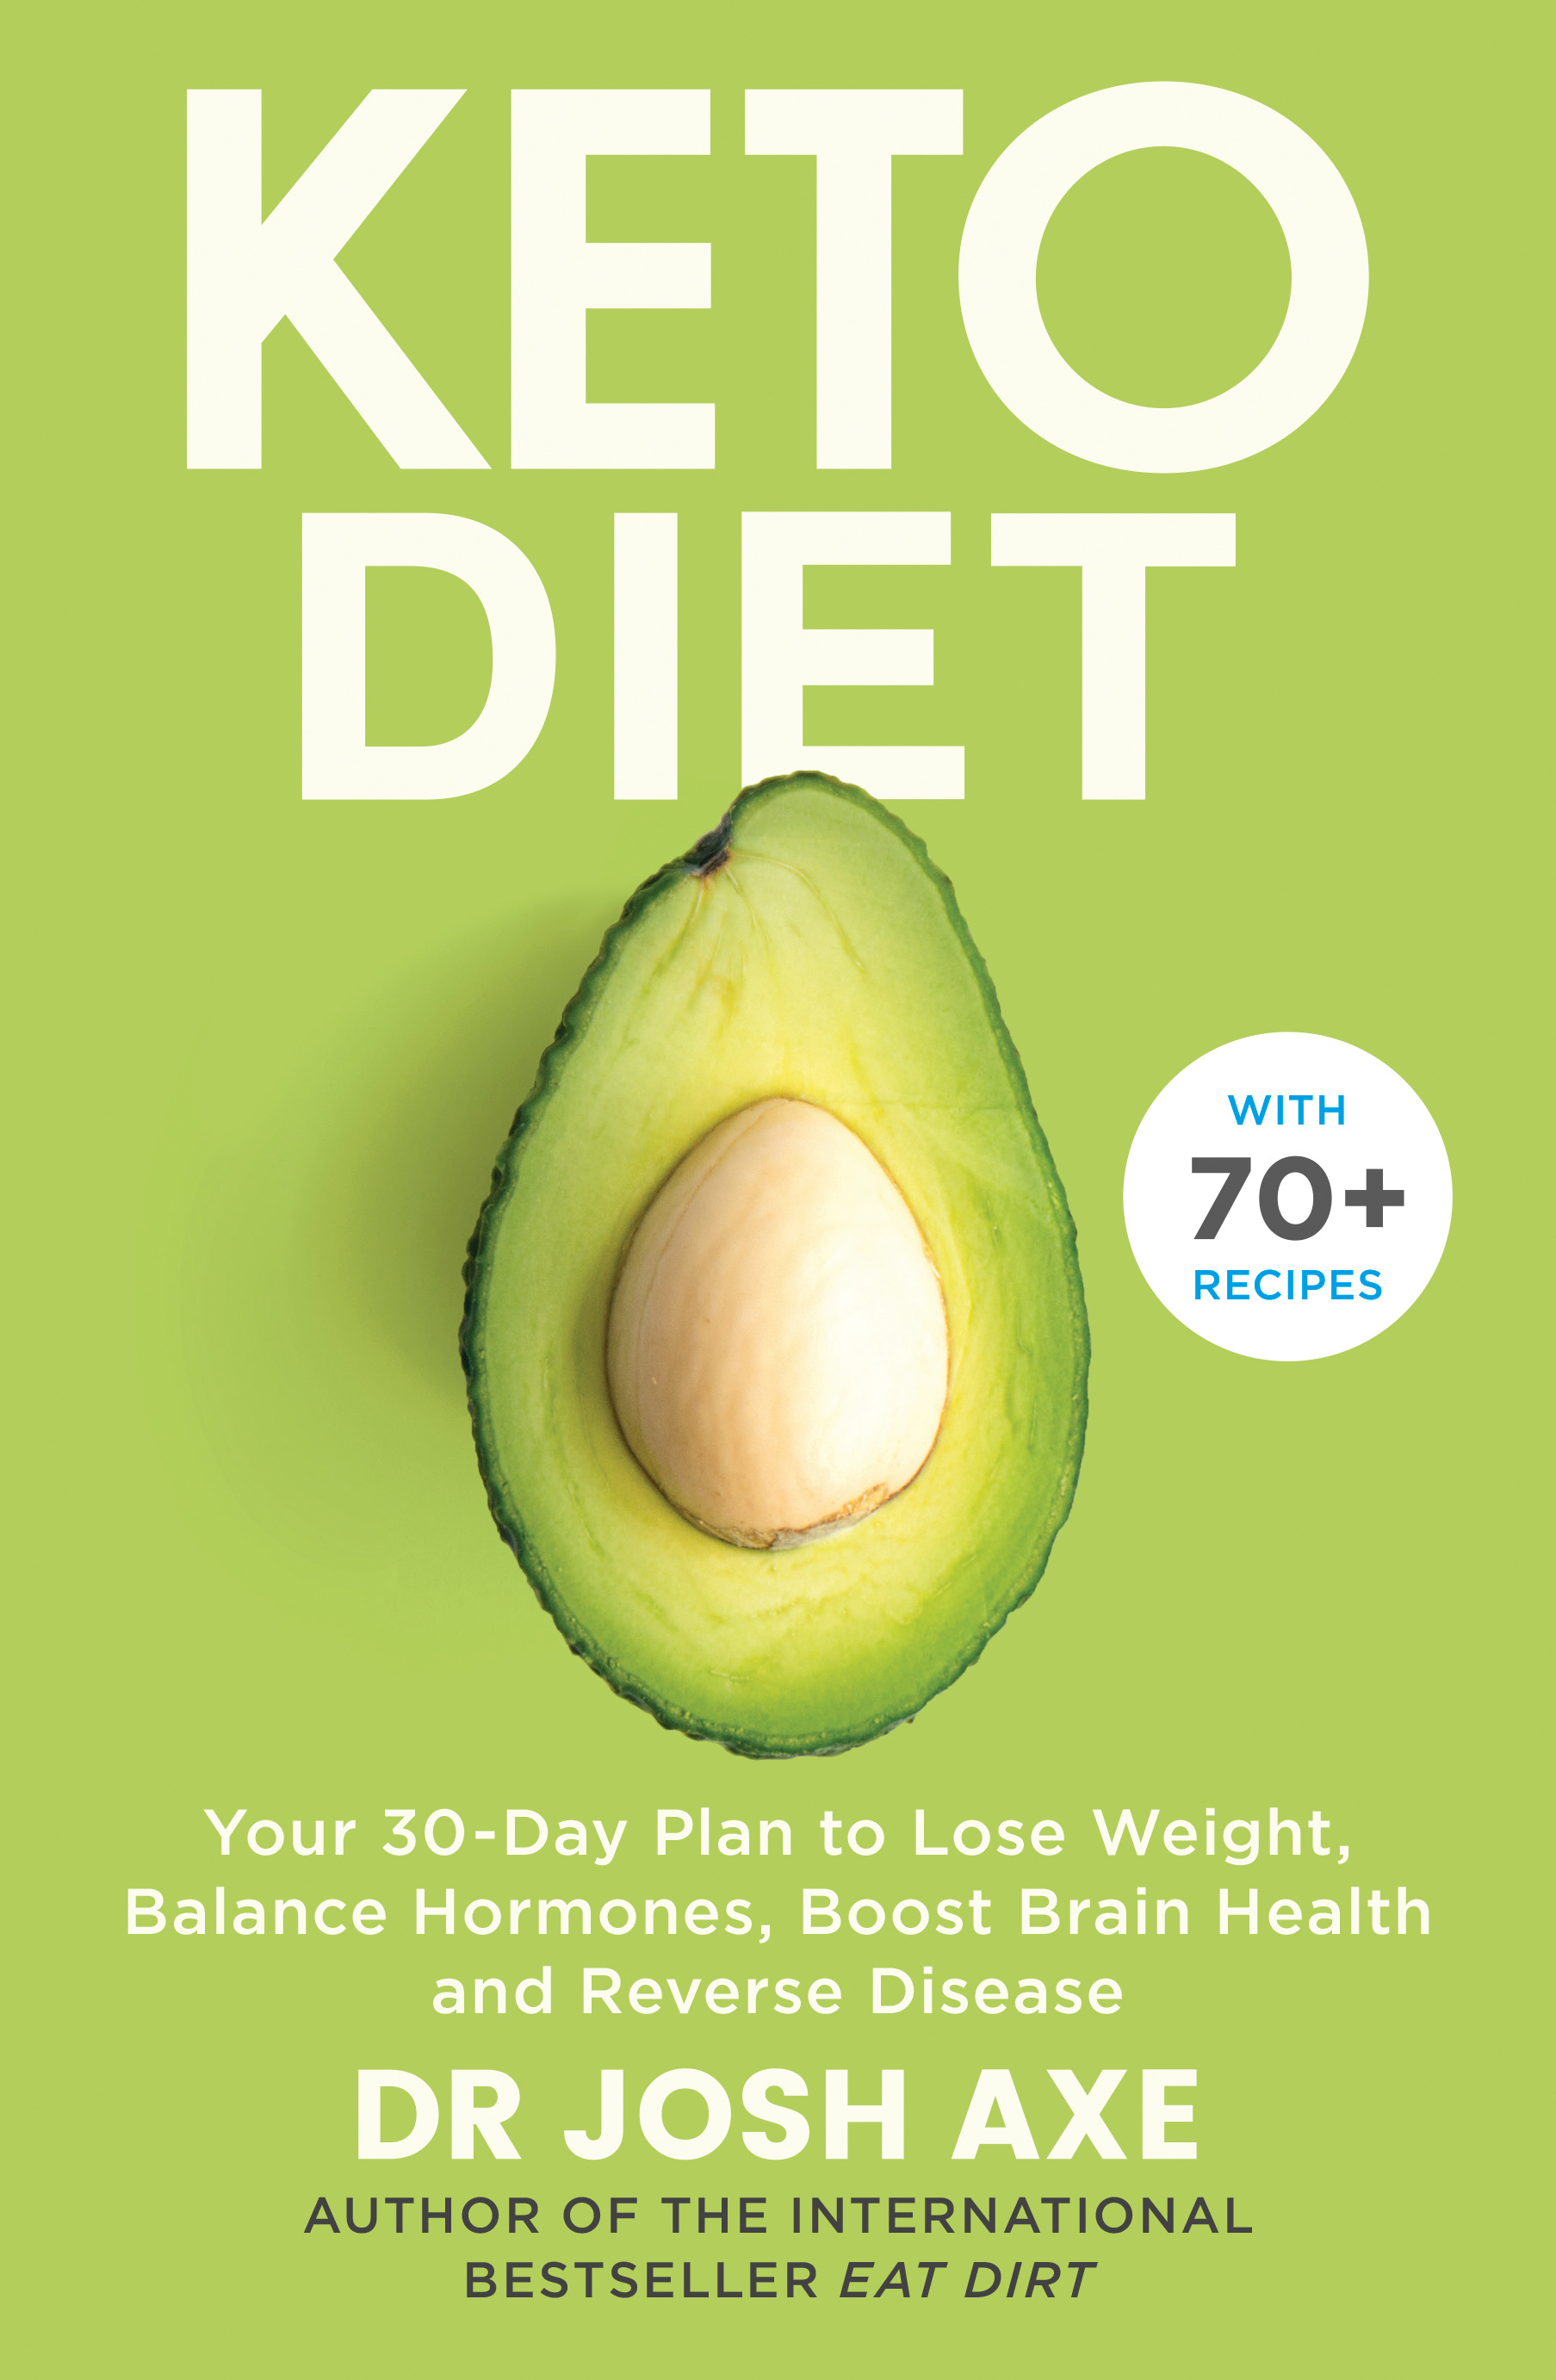 The Keto Diet: Your 30-day plan to lose weight, balance hormones and reverse disease